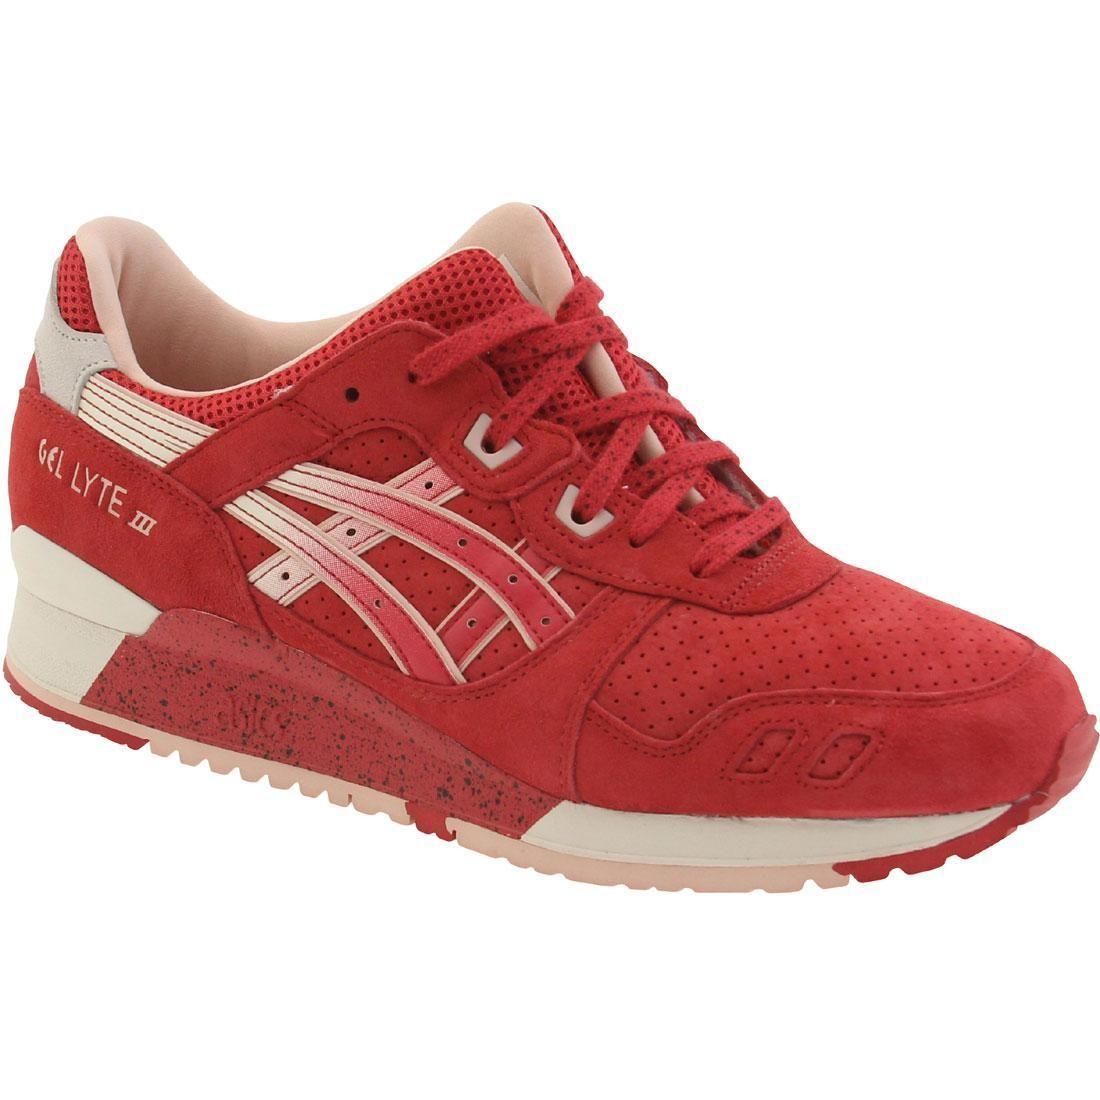 9733b20c5c6e Asics Tiger Men Gel-Lyte III Valentines Day - Strawberries And Cream (red    cream)